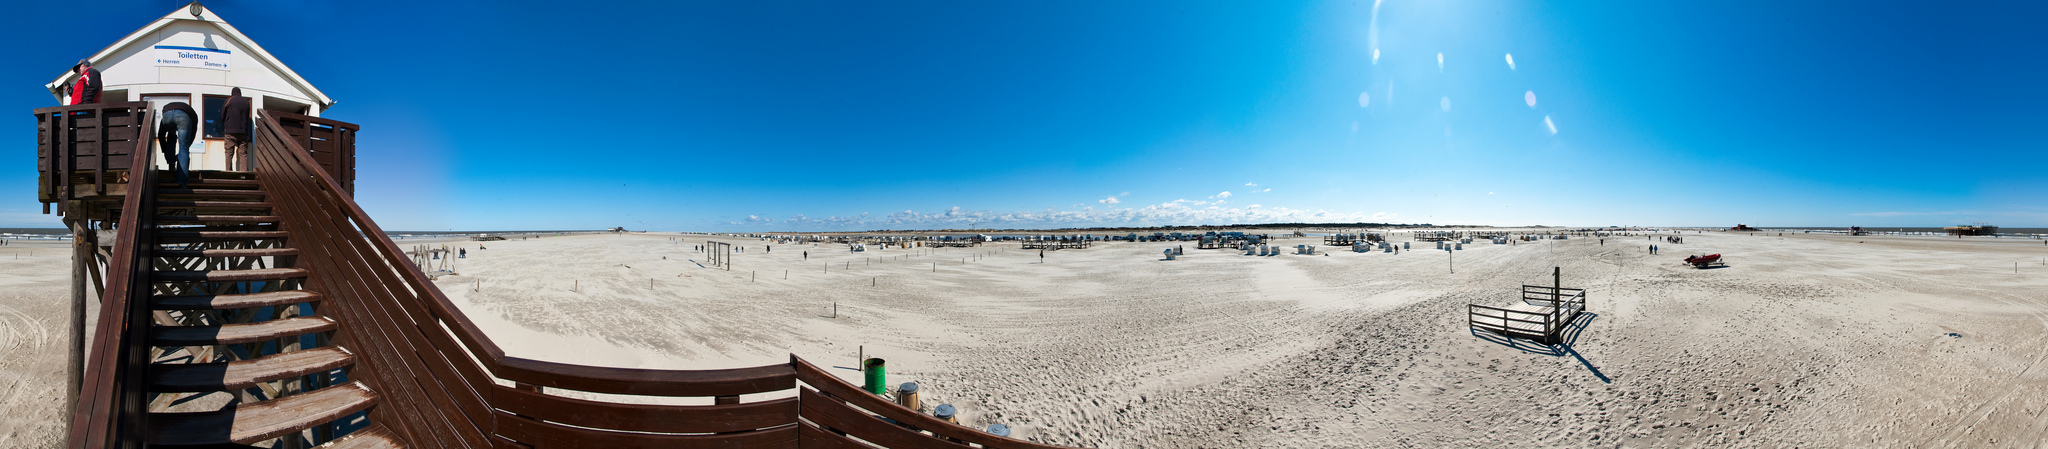 Panorama vom Strand in Sankt Peter-Ording